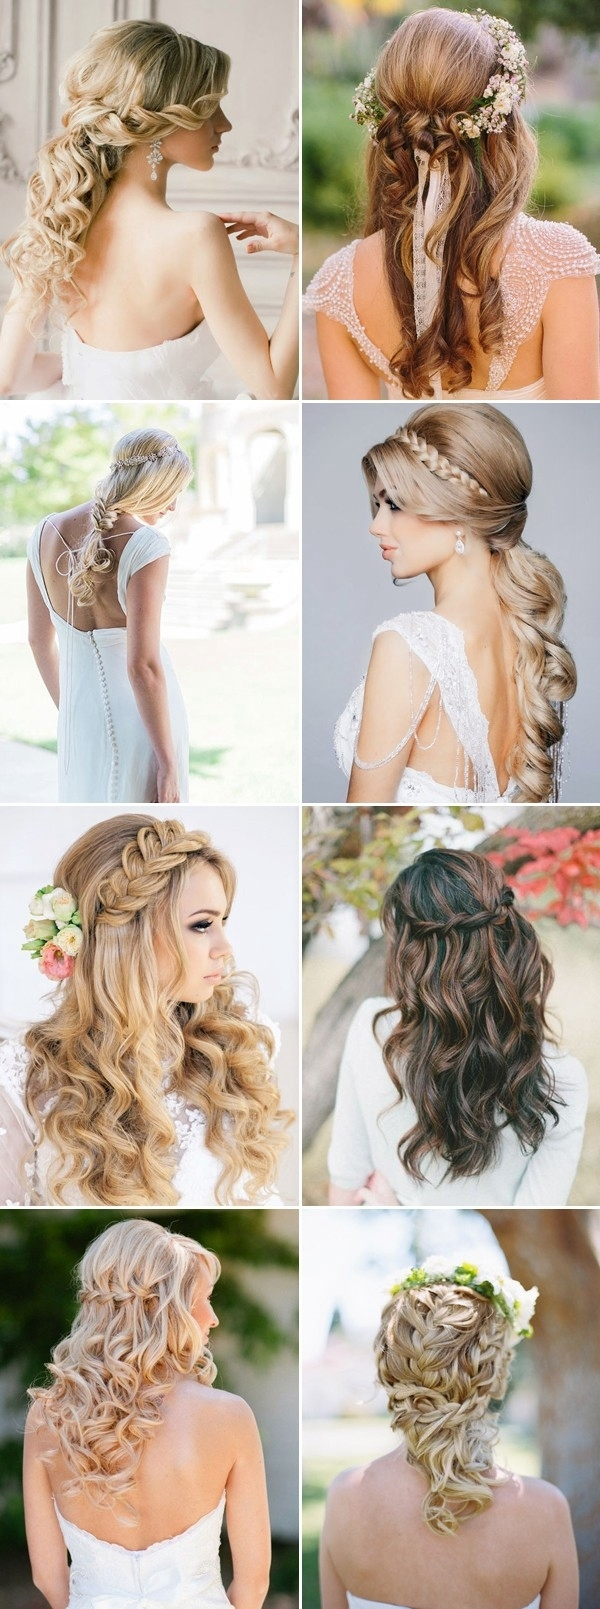 100+ Romantic Long Wedding Hairstyles 2018 – Curls, Half Up, Updos Inside Famous Wedding Hairstyles For Long Hair Half Up With Veil (View 1 of 15)